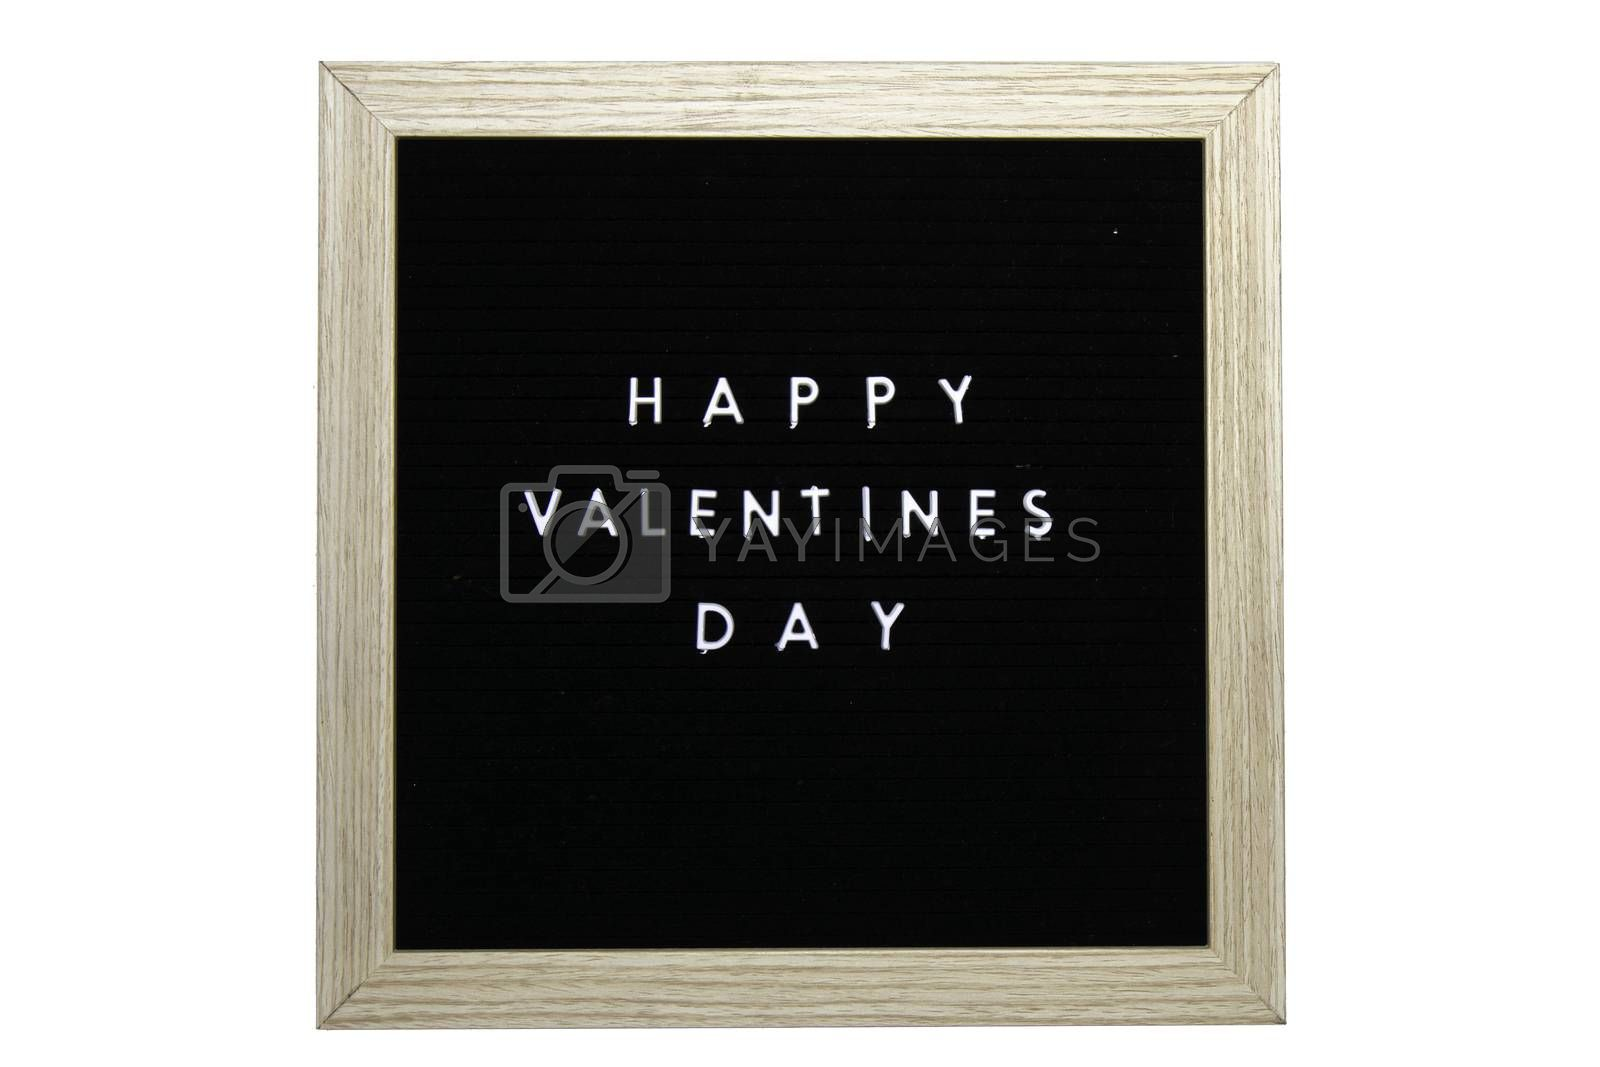 A Black Sign With a Birch Frame That Says Happy Valentines Day in White Letters on a Pure White Background